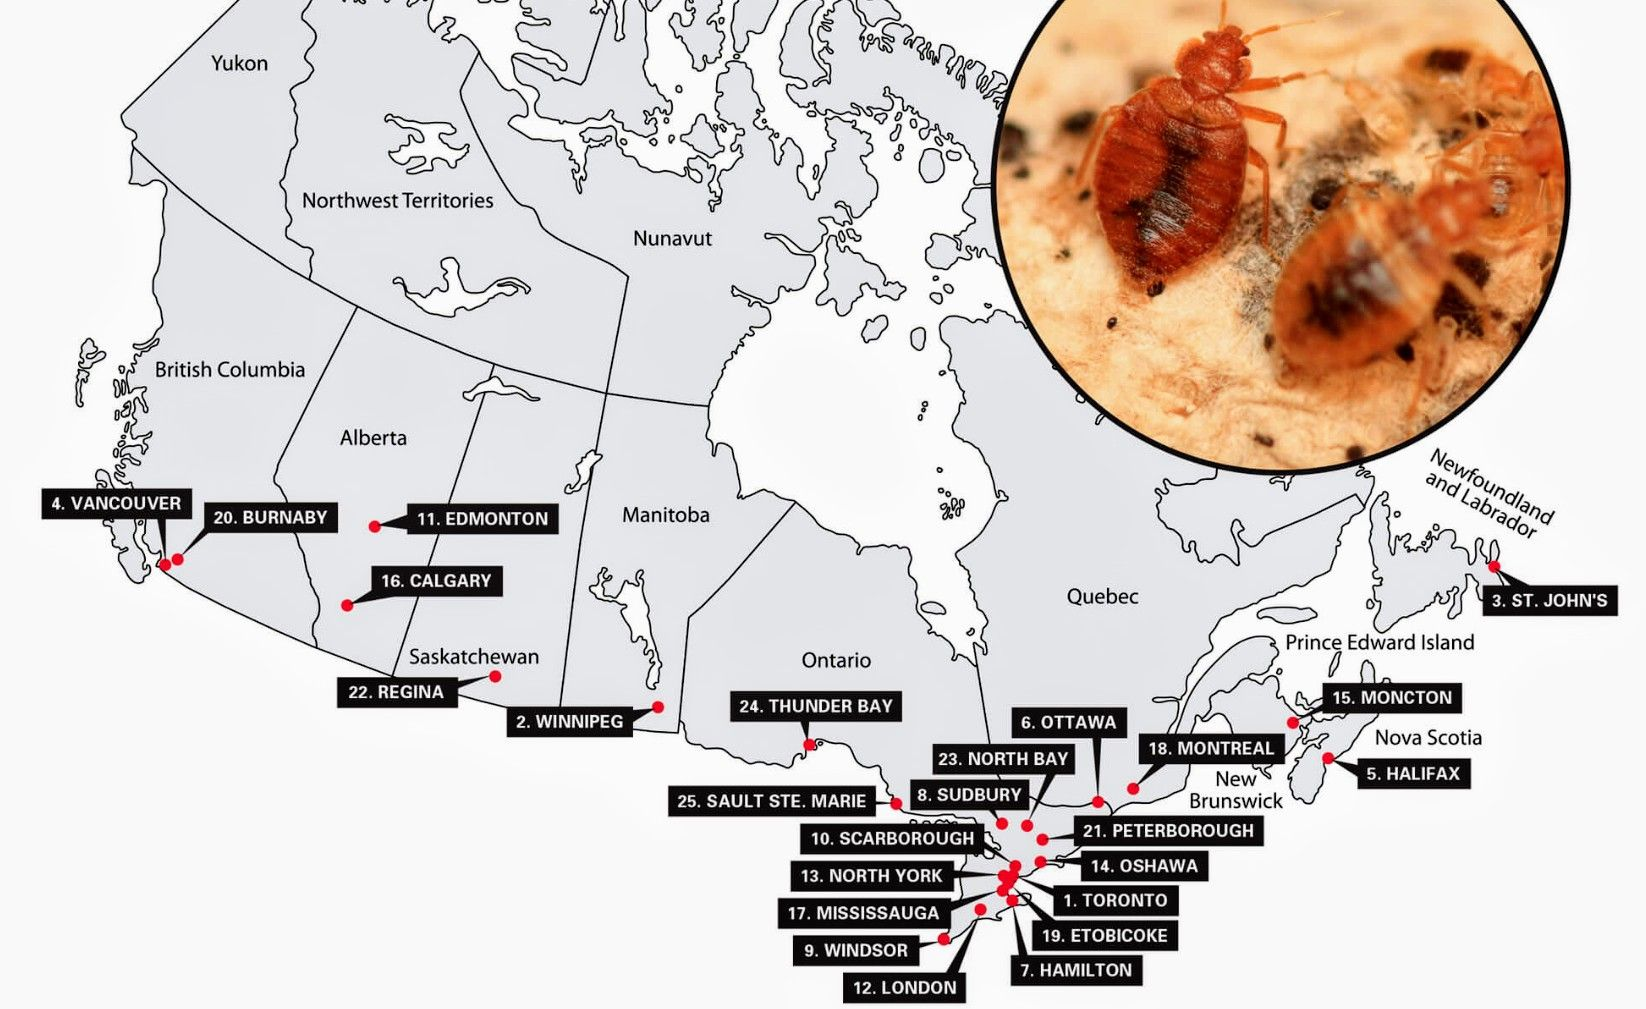 Don't get bit! Canada has a major bedbug problem. Where